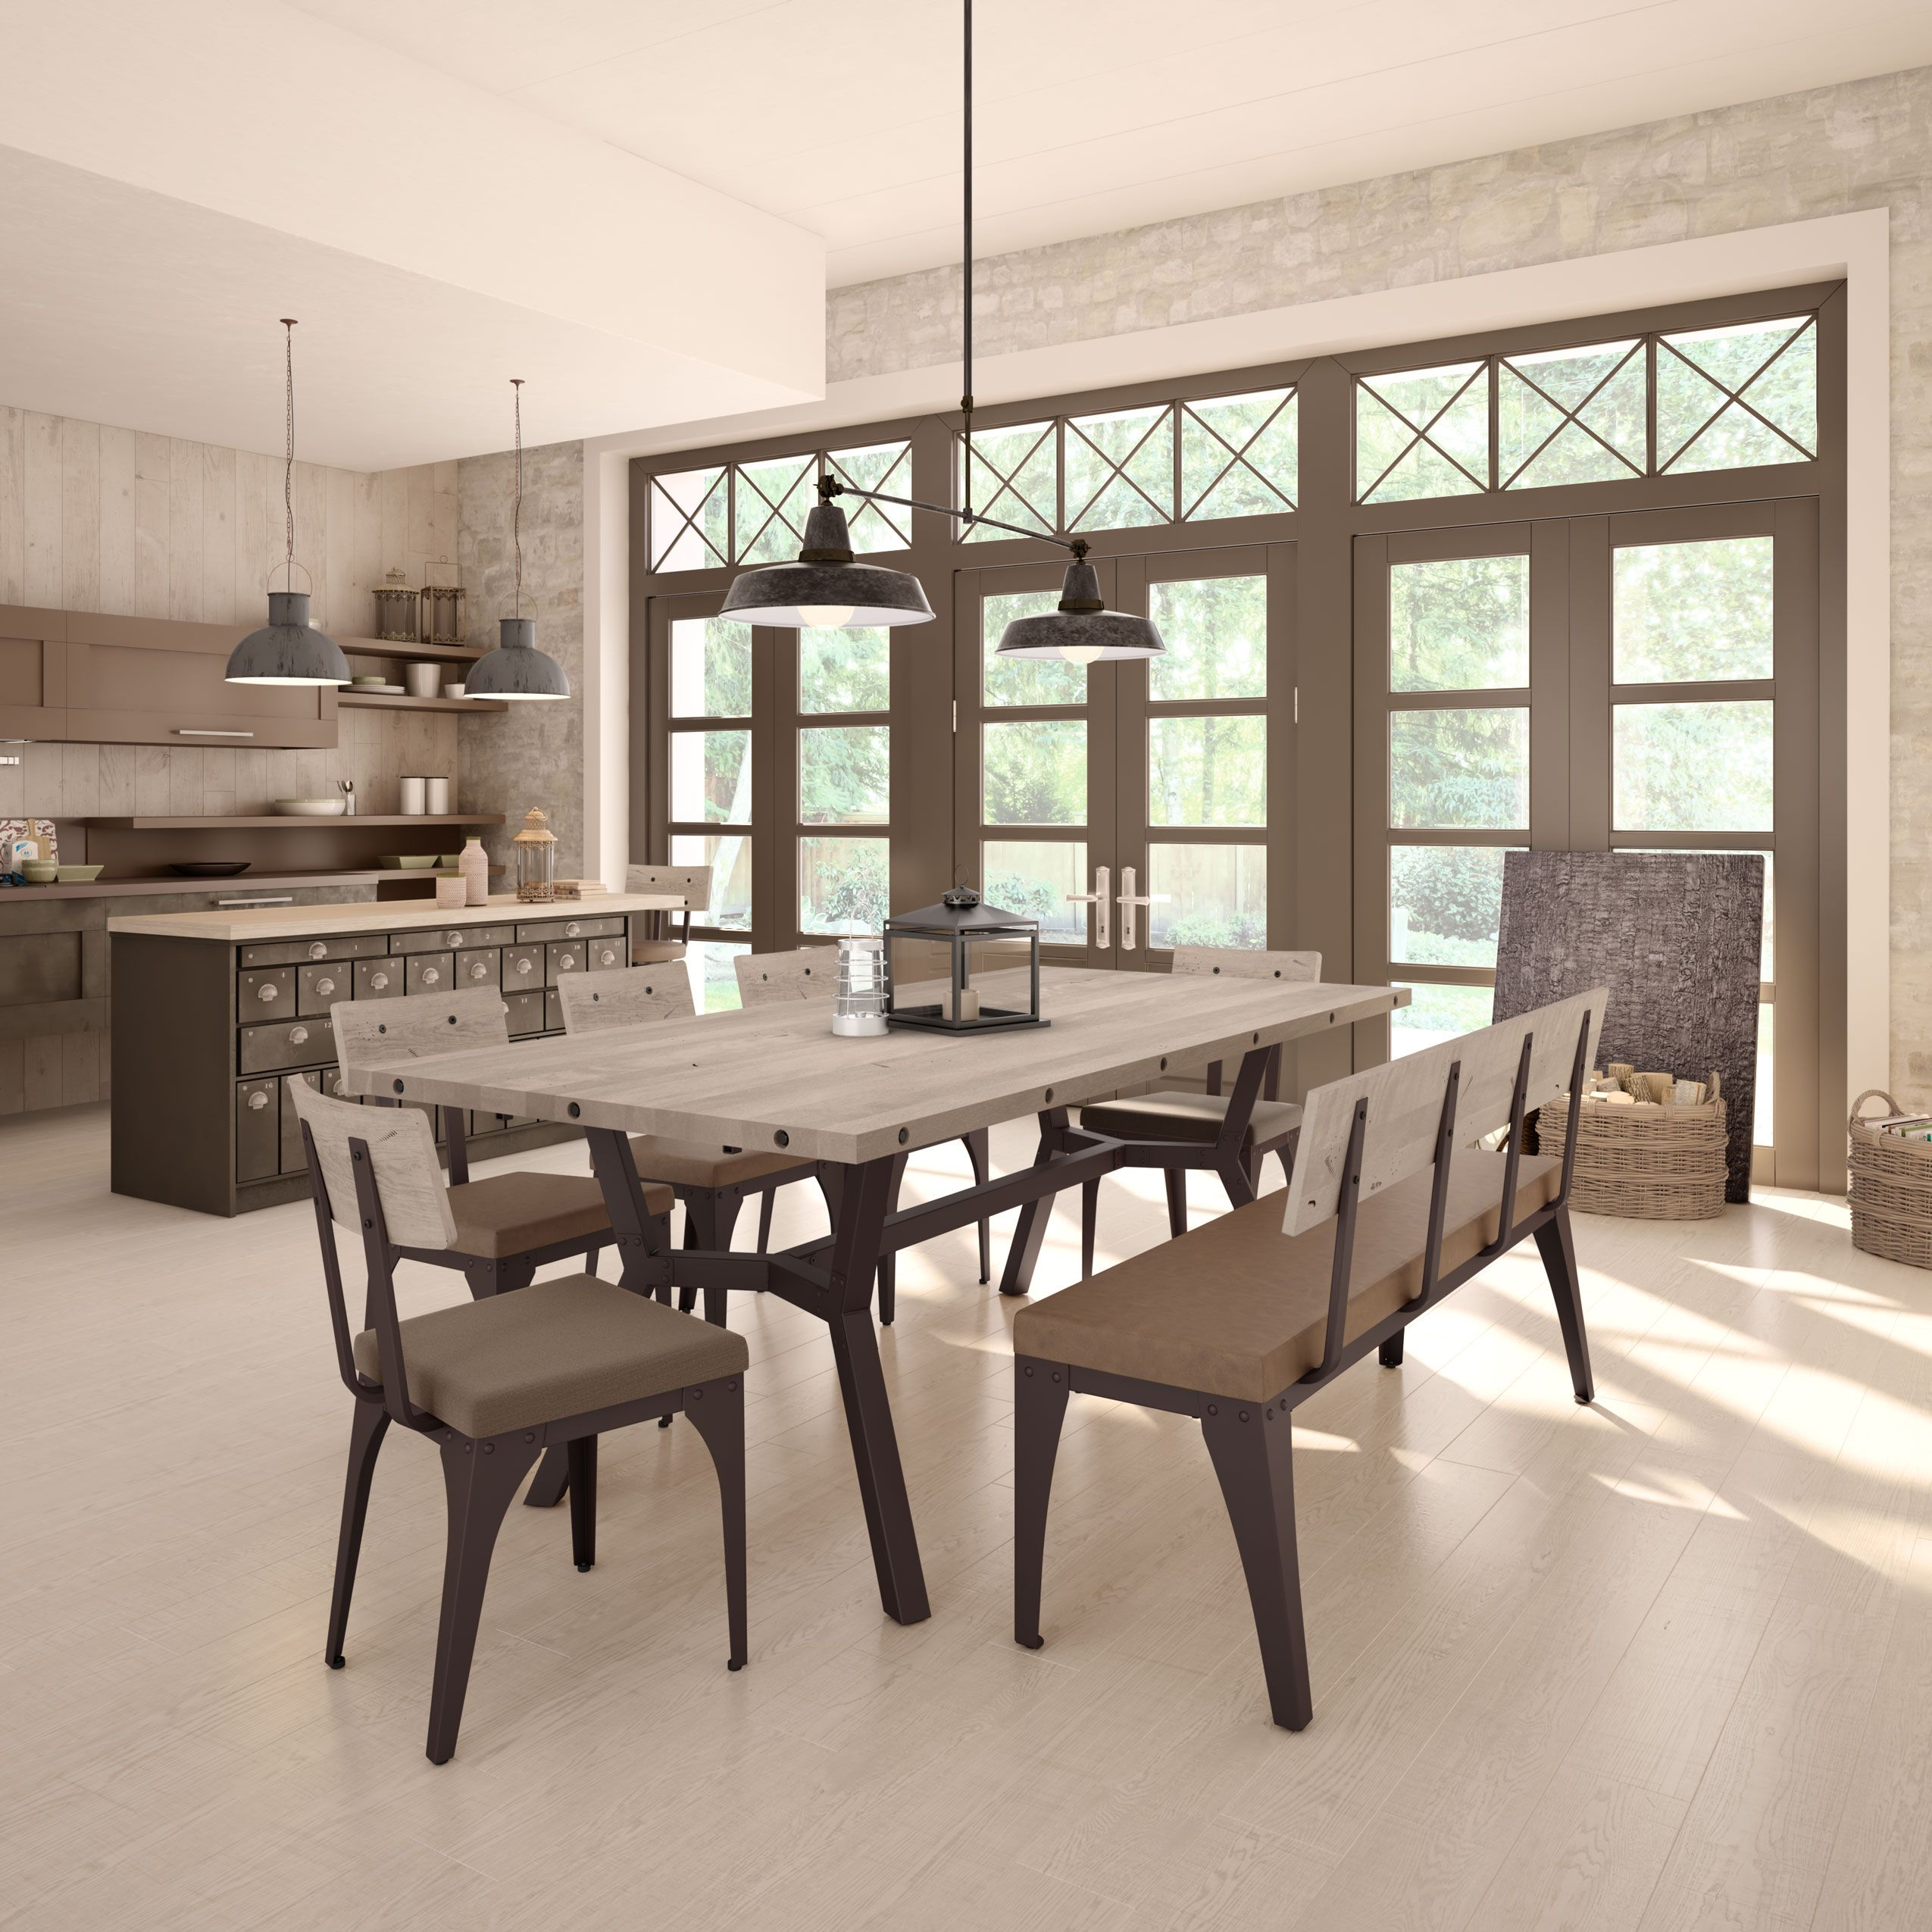 Amisco Southcross Table 50567 Architect Chair 30263 Architect Bench 30273 Furniture Kitchen Indus